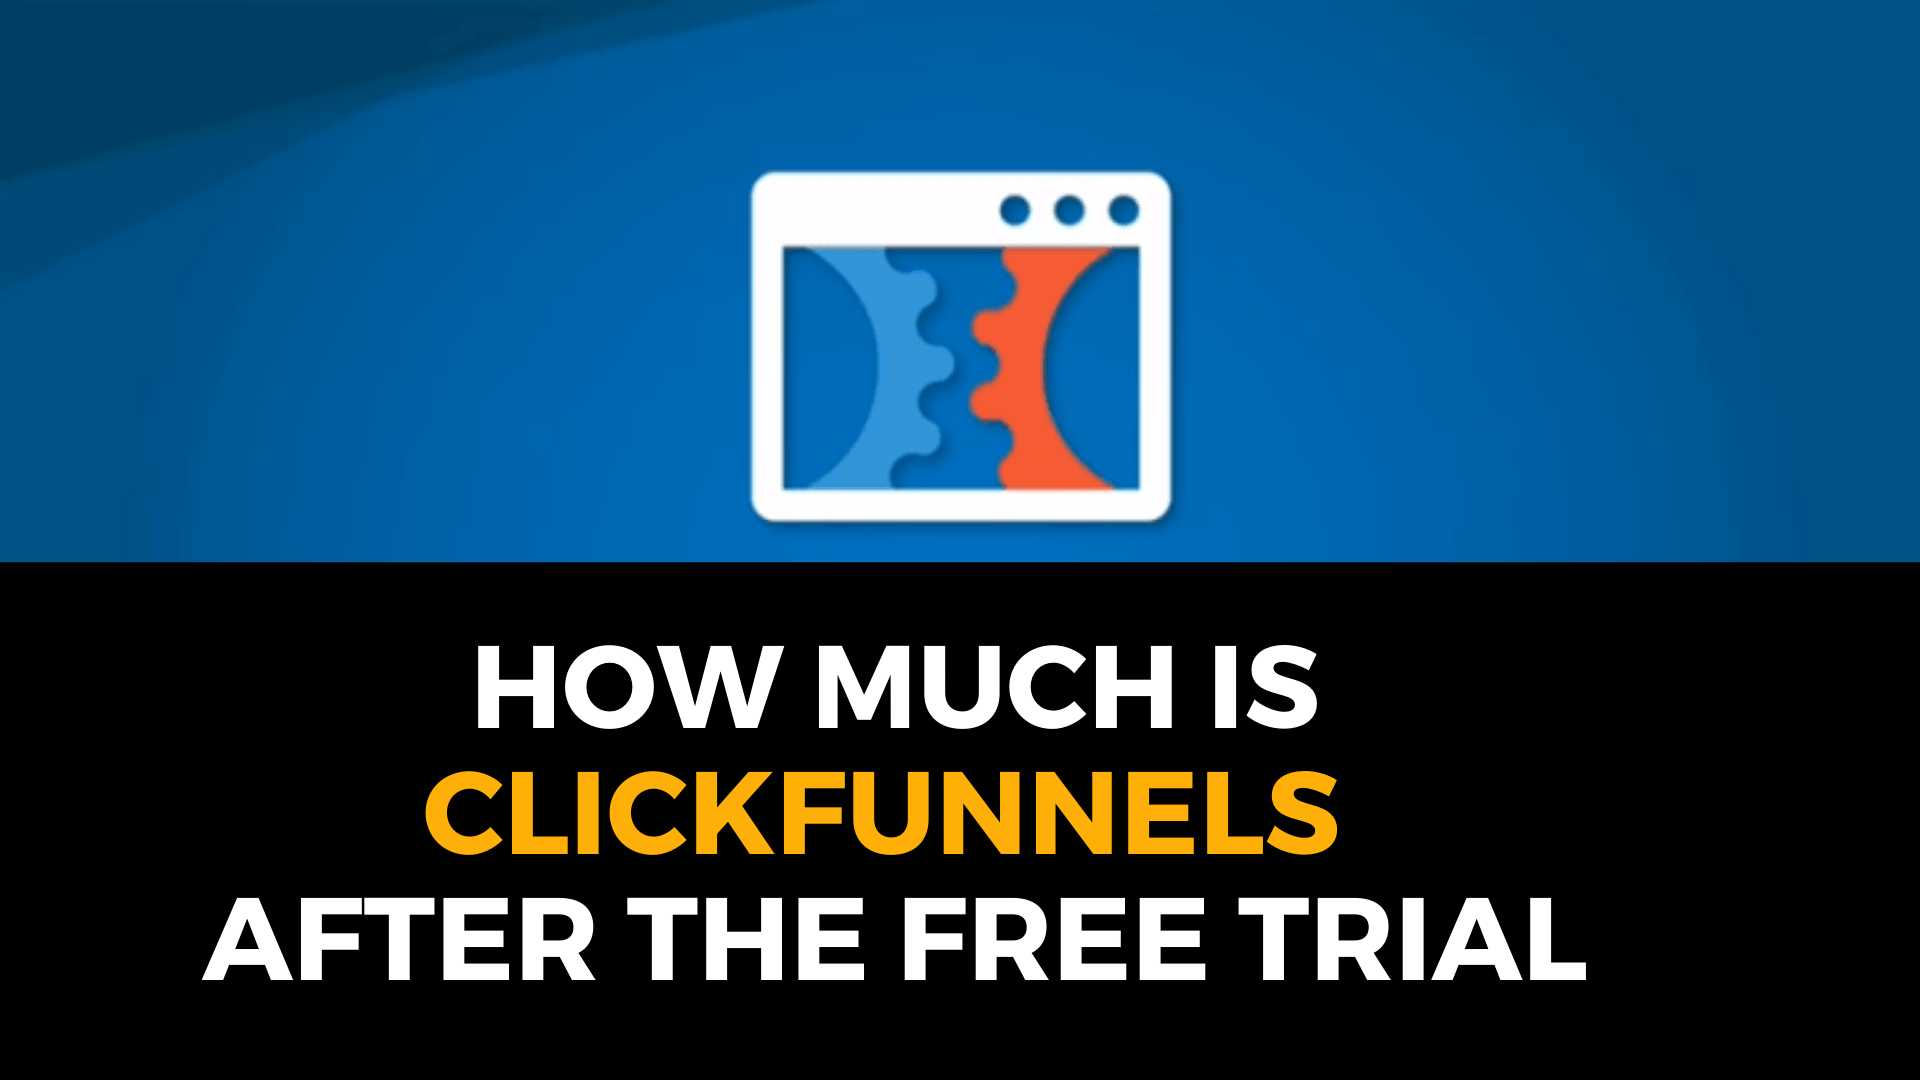 How much is ClickFunnels after the free trial?